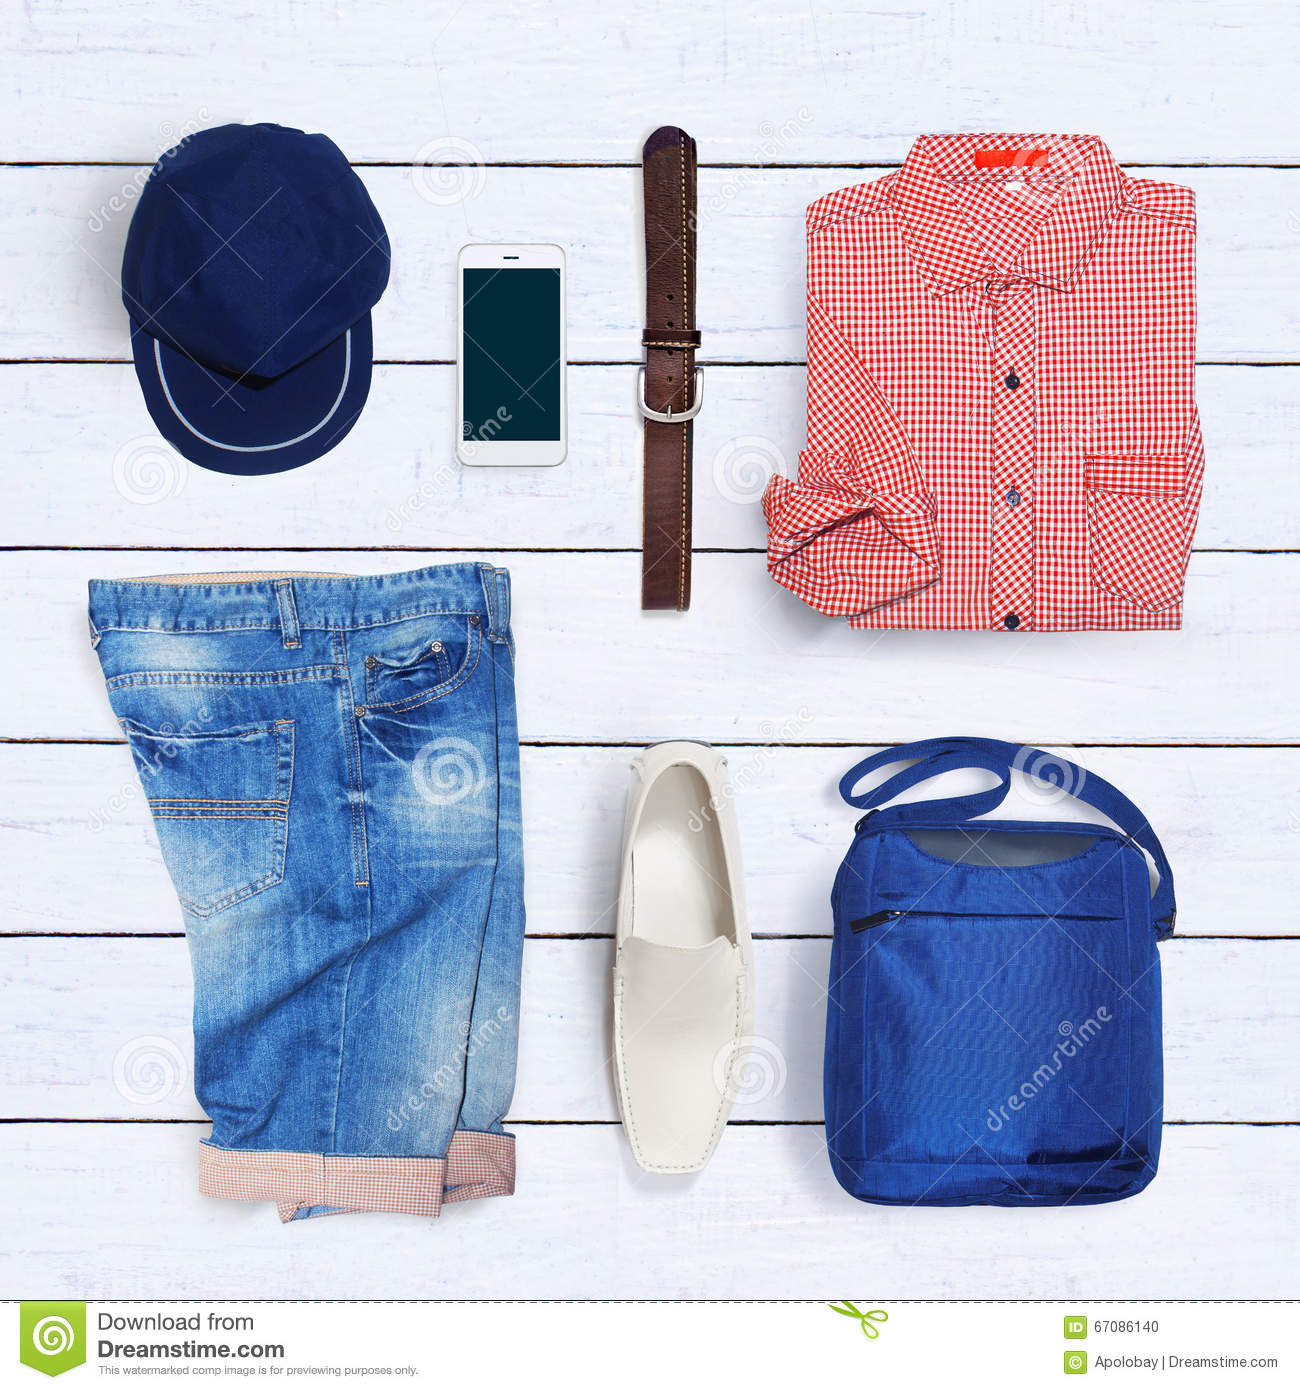 67f54977 Collection Collage Of Men's Clothing Stock Photo - Image of ...